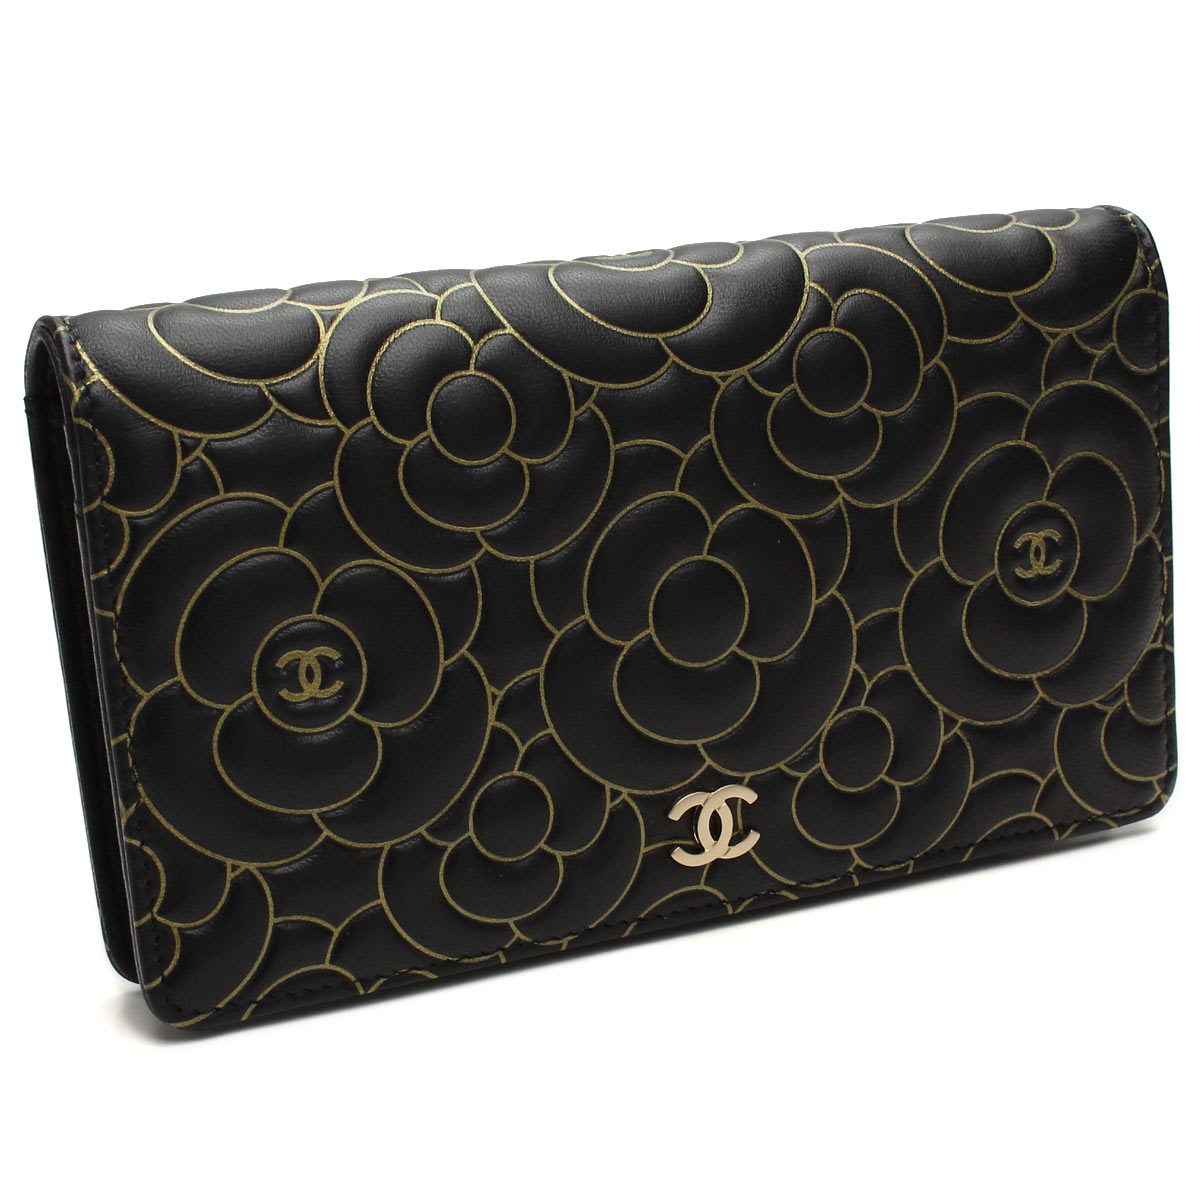 4a137b77ce0e Bighit The total brand wholesale  Chanel wallet bi-fold coin coin purse  A82282 black   gold.( taxfree send by EMS authentic A brand new item )